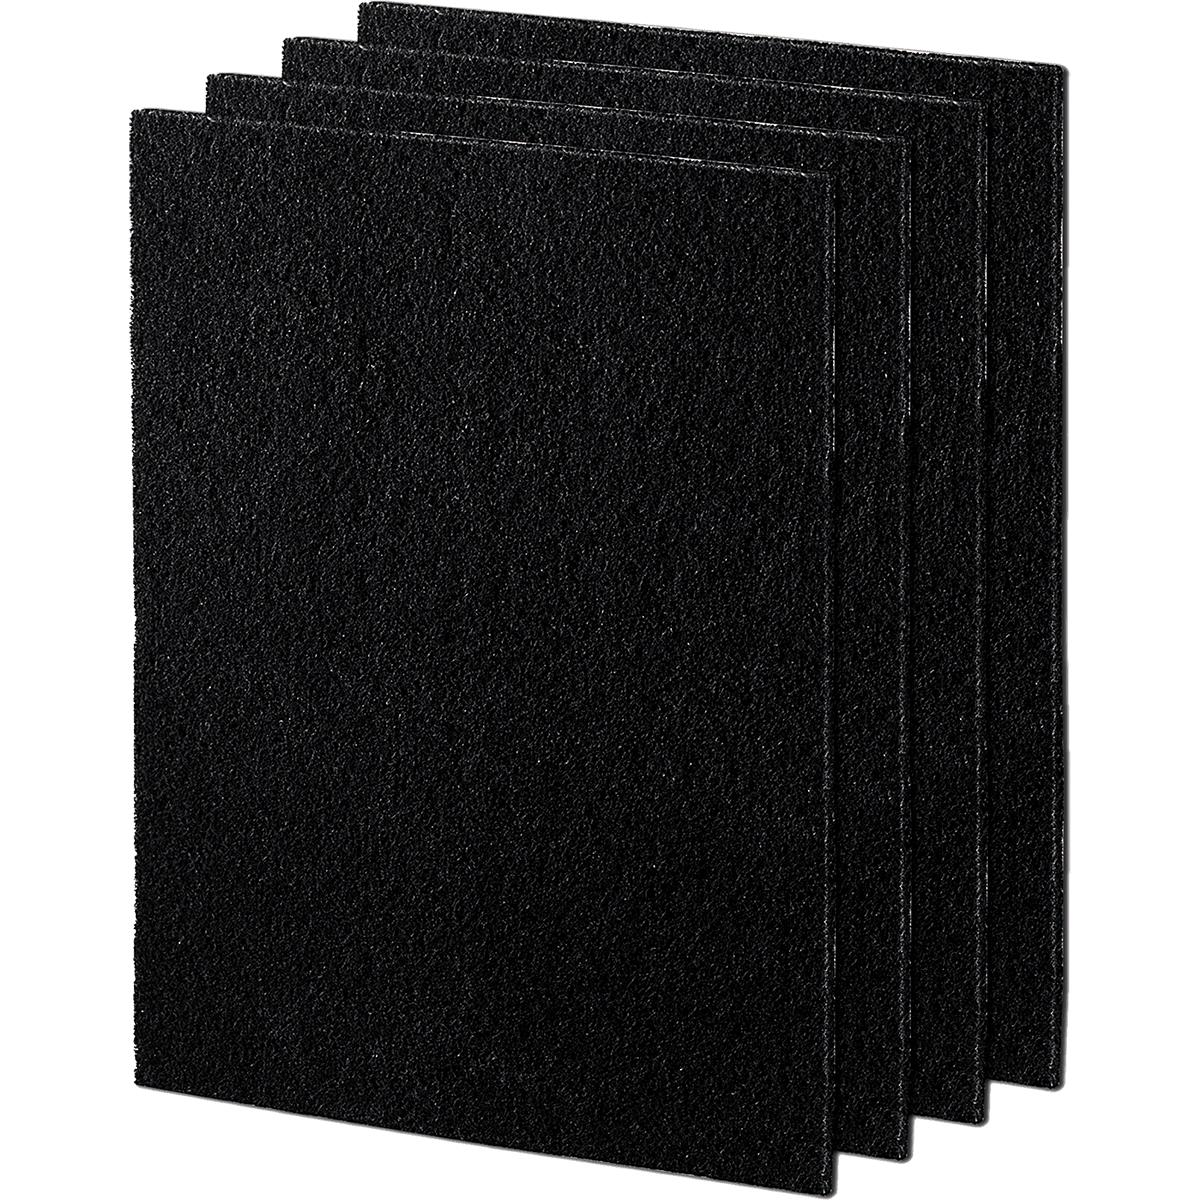 Image of AeraMax Carbon Filters for 290/300/DX95 Air Purifier - 4-Pack